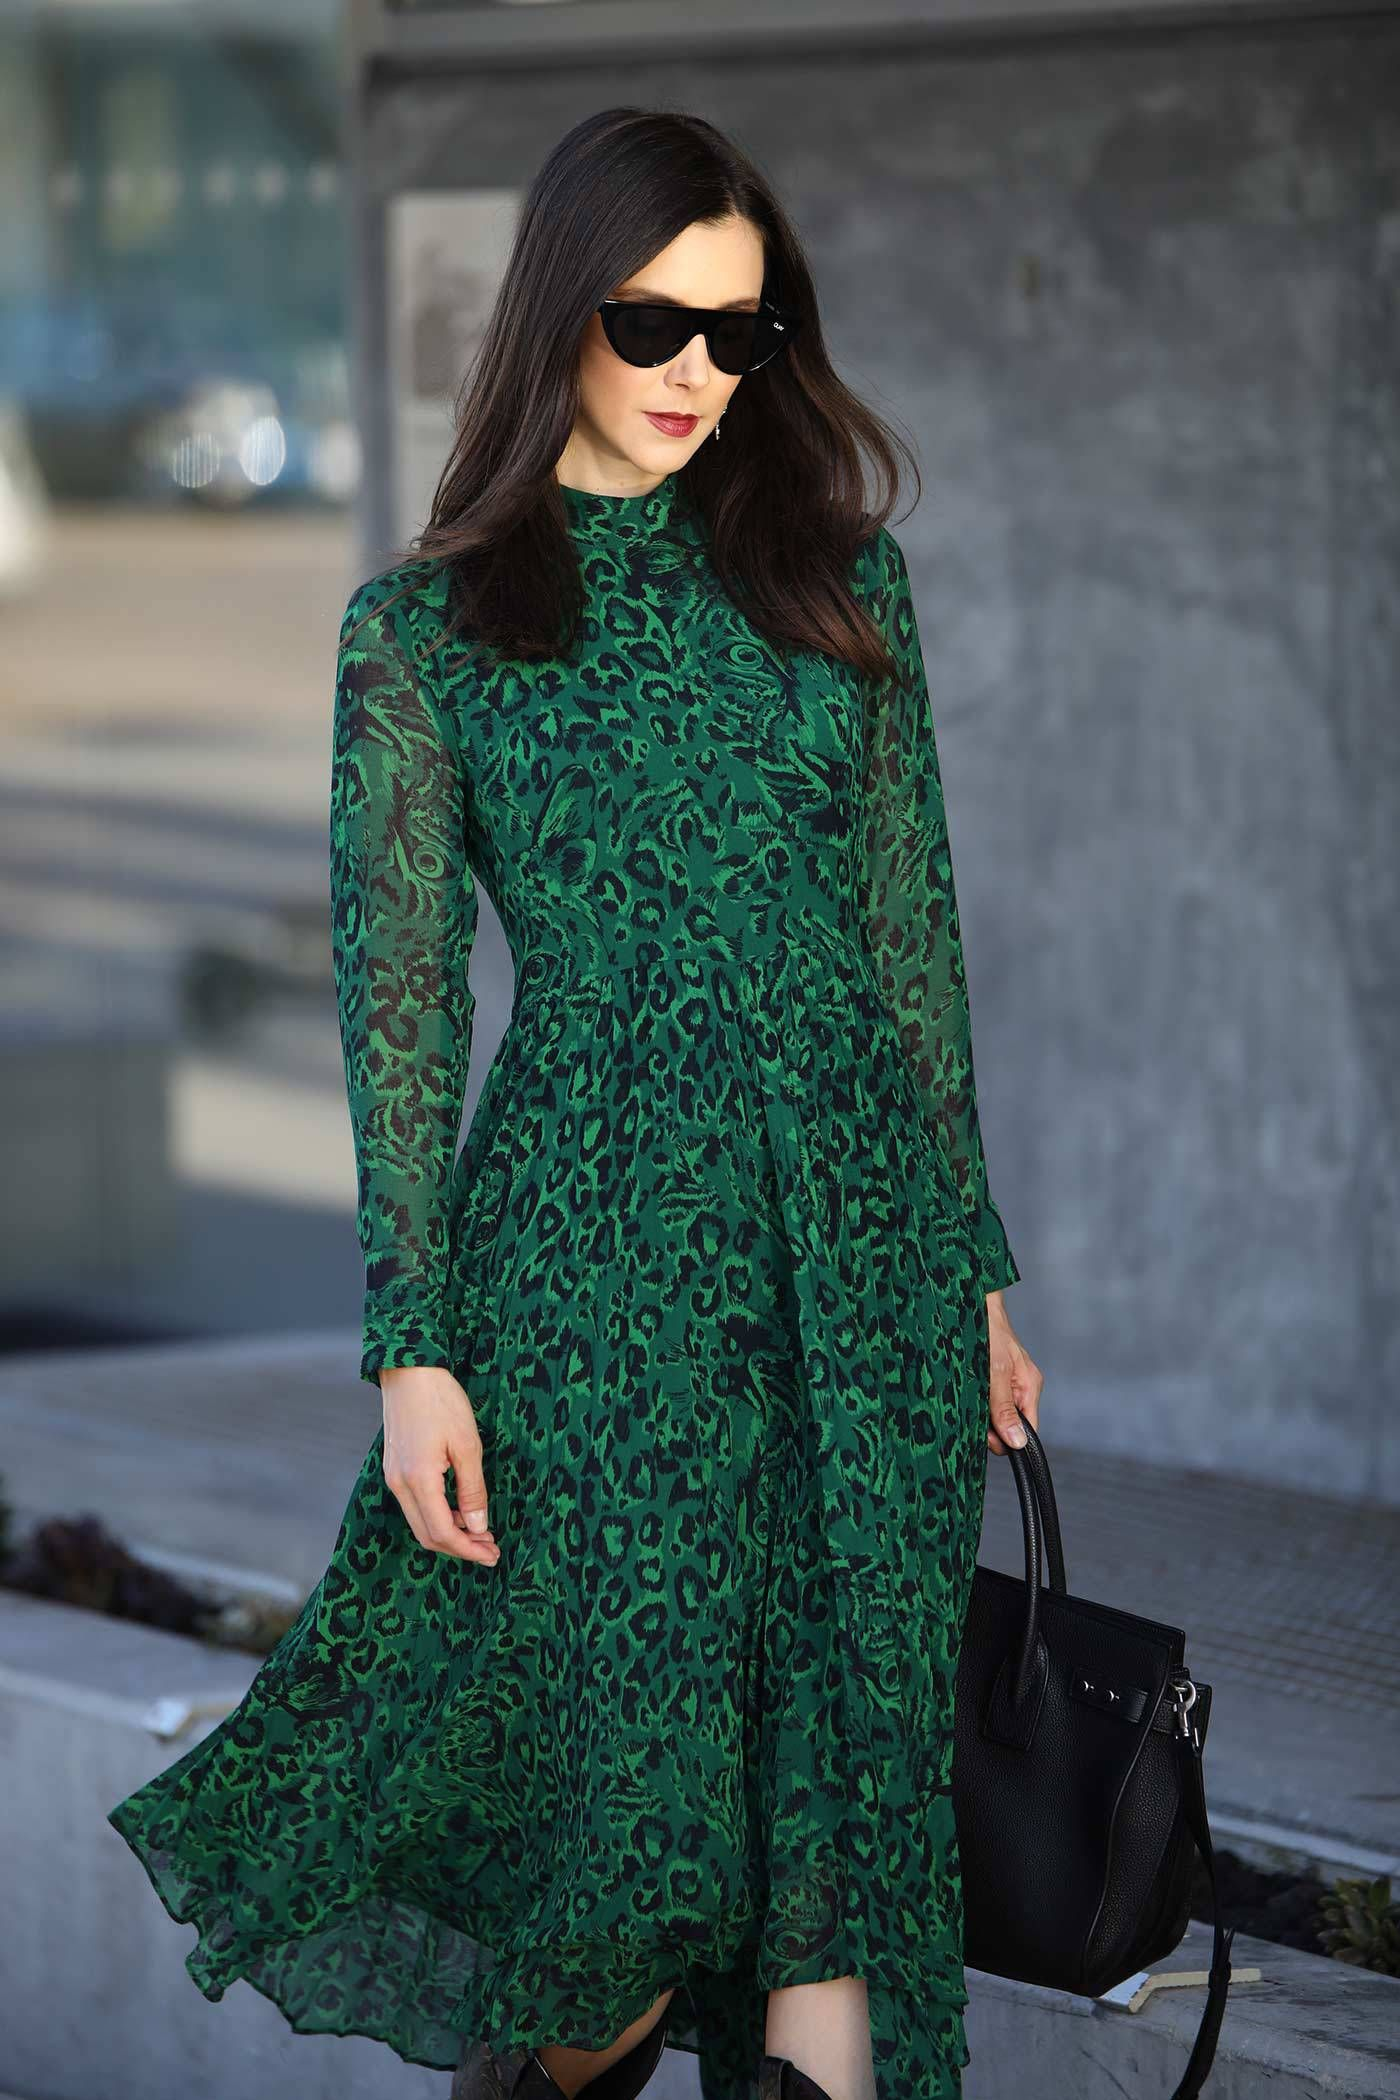 fb10e346de4e Whistles London emerald green leopard print dress